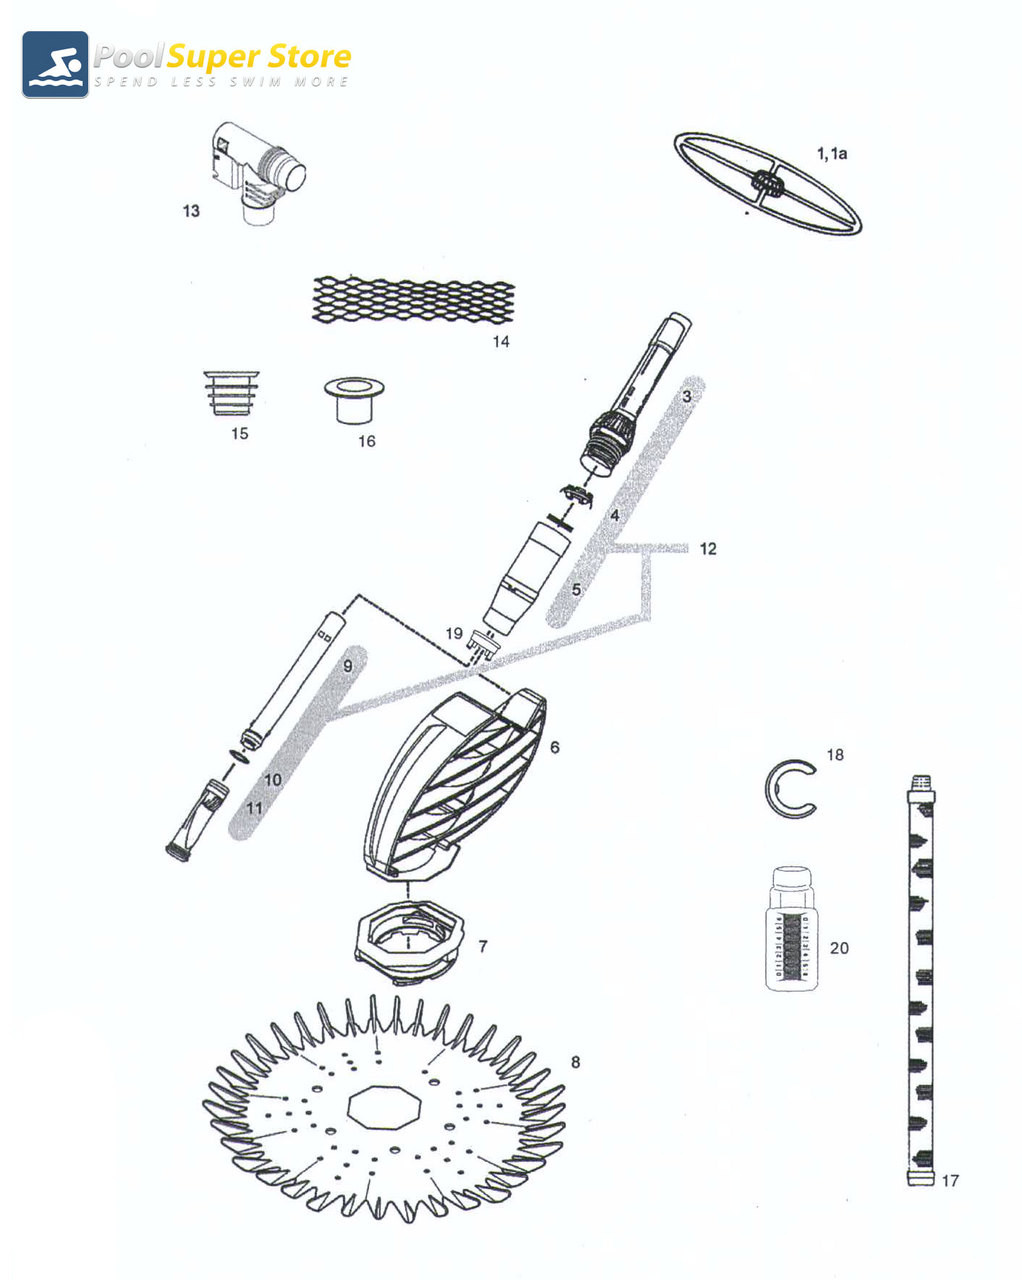 Pool cleaner spares zodiac g2 page 1 pool super store for a full diagram and break down of your zodiac g2 please click here ccuart Choice Image